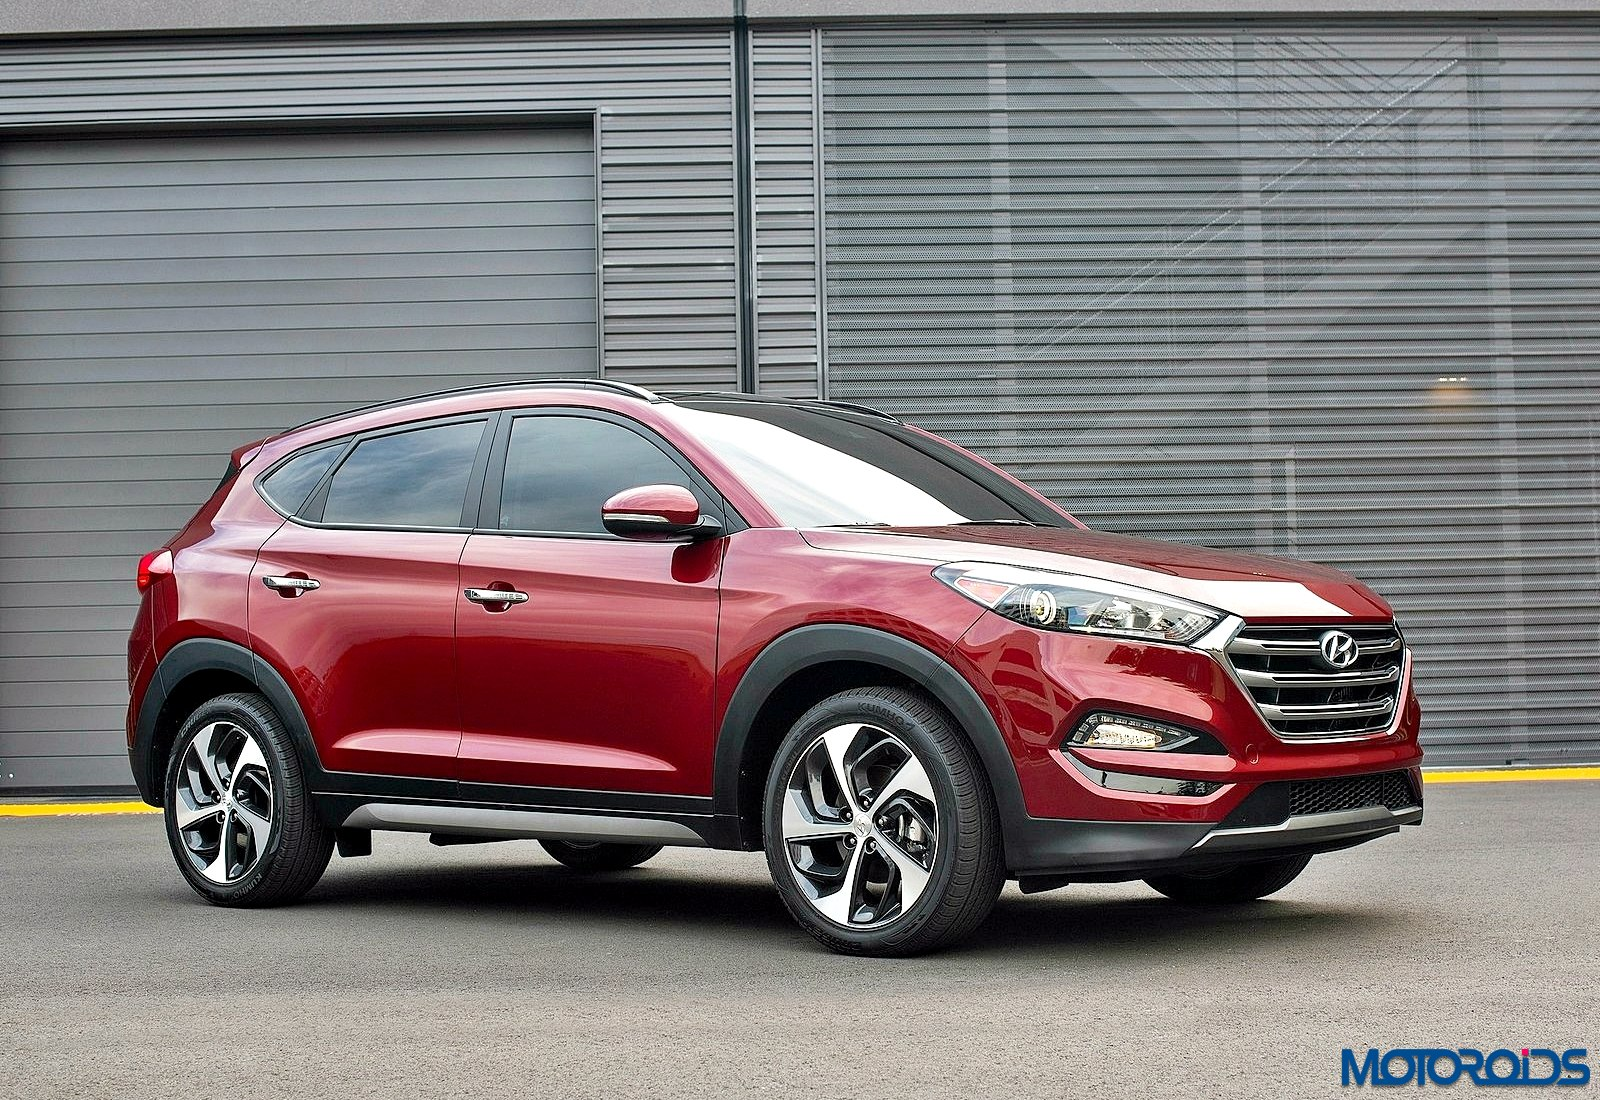 new hyundai tucson to make its india debut at the 2016. Black Bedroom Furniture Sets. Home Design Ideas